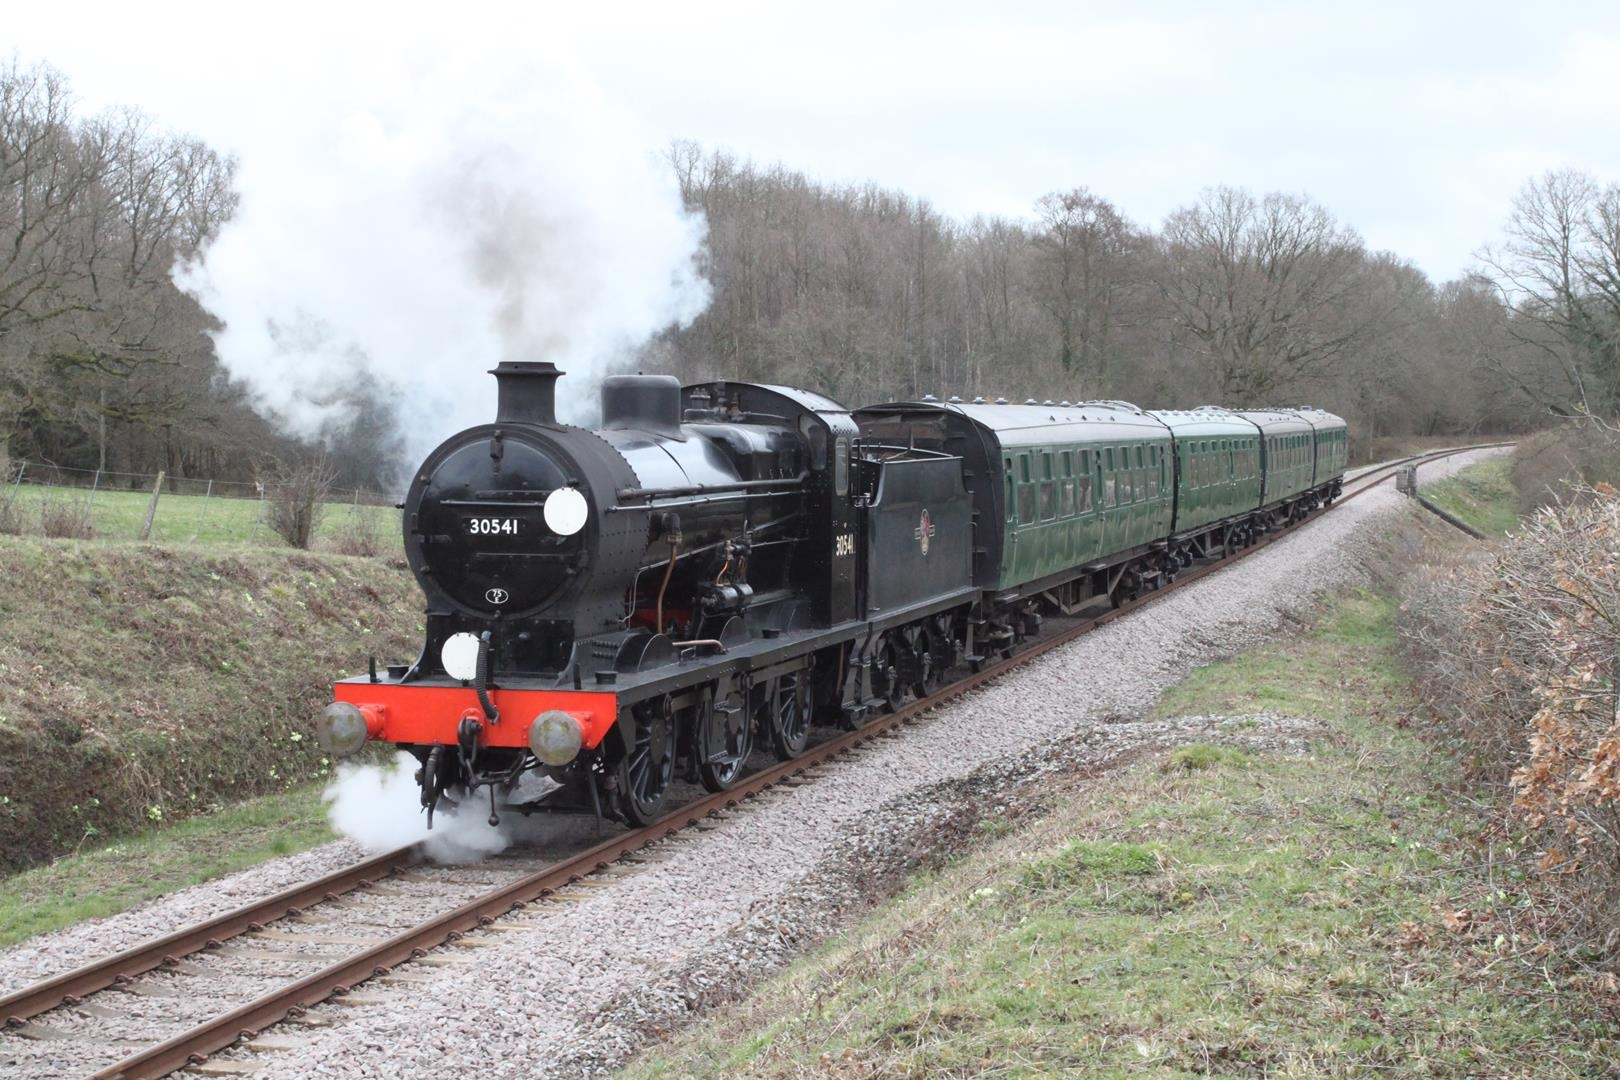 bluebell_railway_publicity_picture_credit_andrew_strongitharm_1620